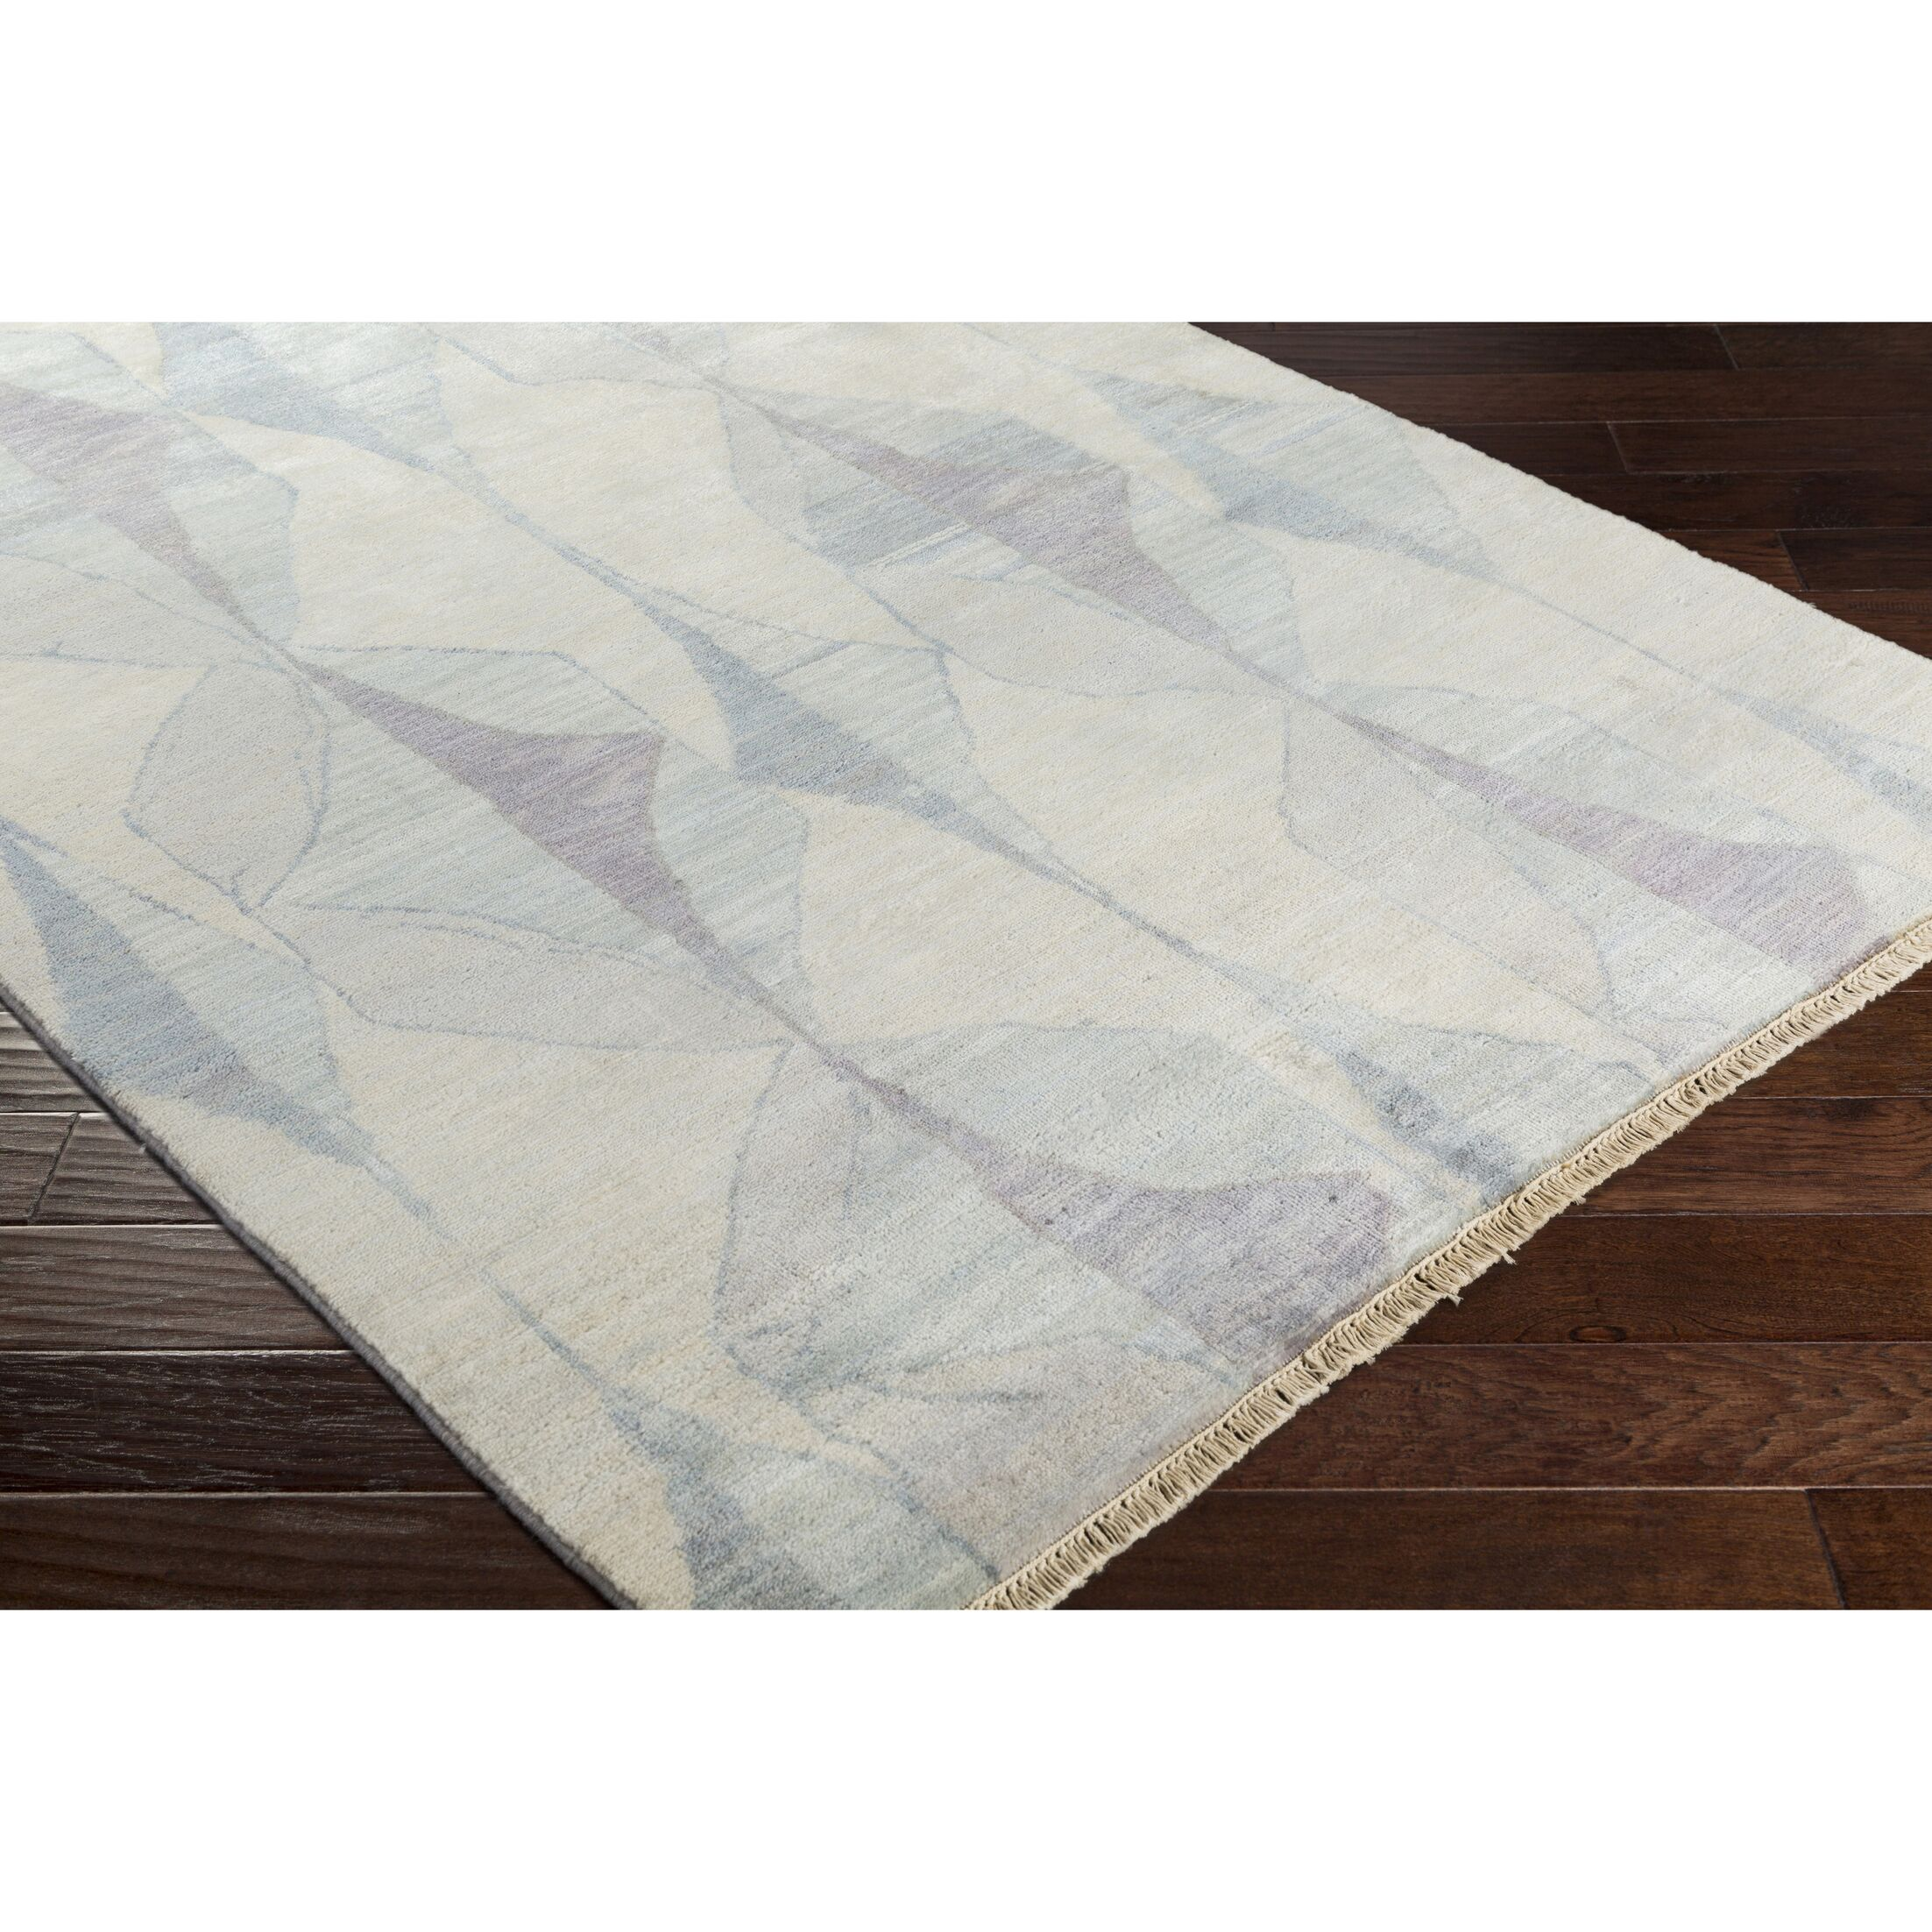 Larache Hand-Knotted Neutral/Gray Area Rug Rug Size: Rectangle 6' x 9'